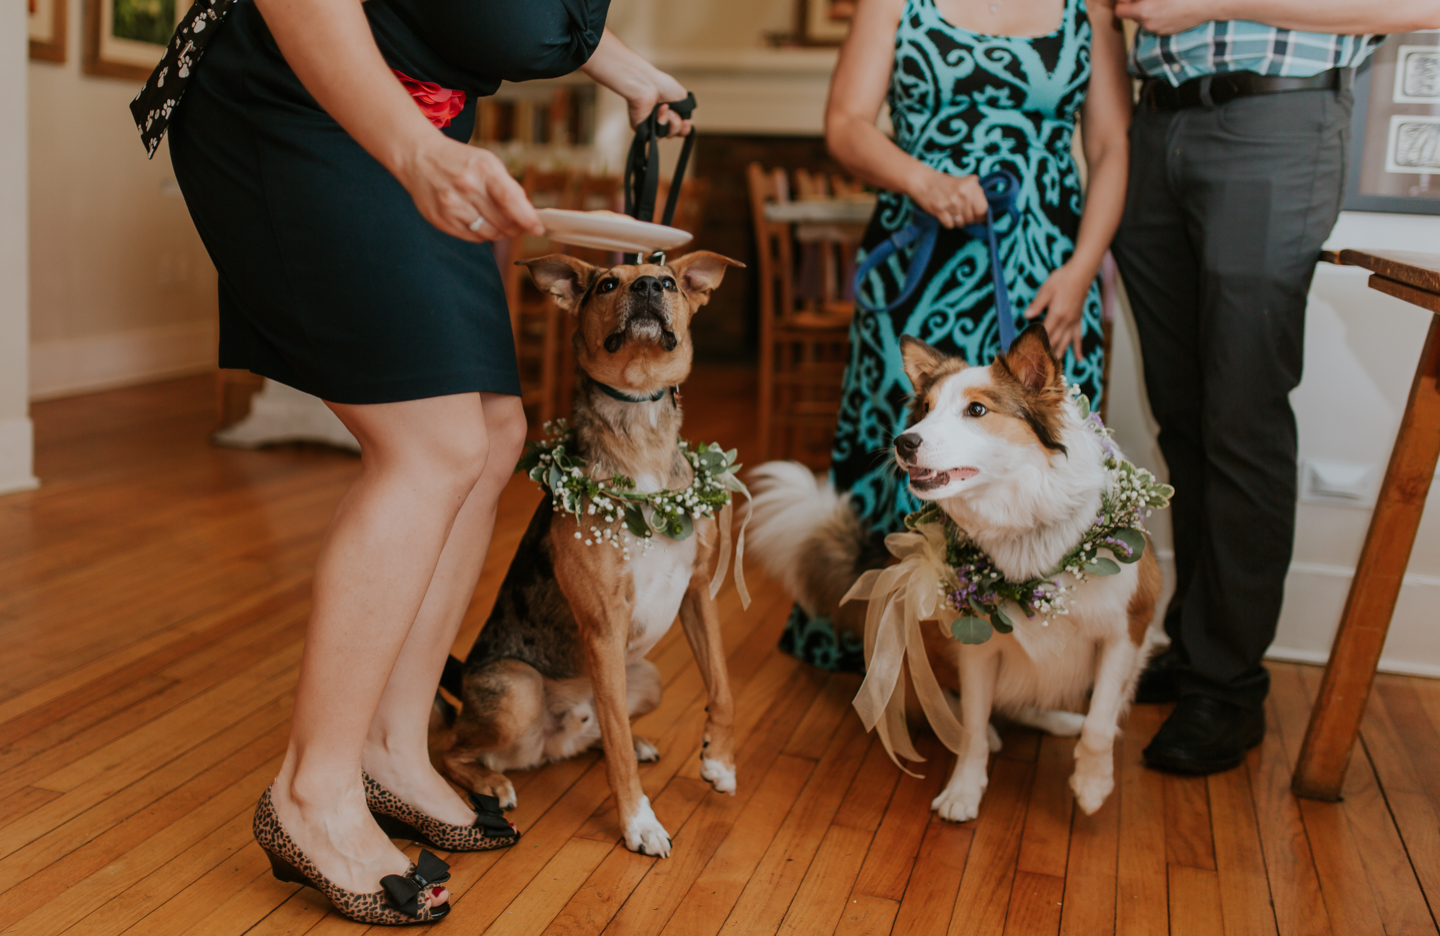 lola-grace-photography-dog-intimate-wedding-25.jpg